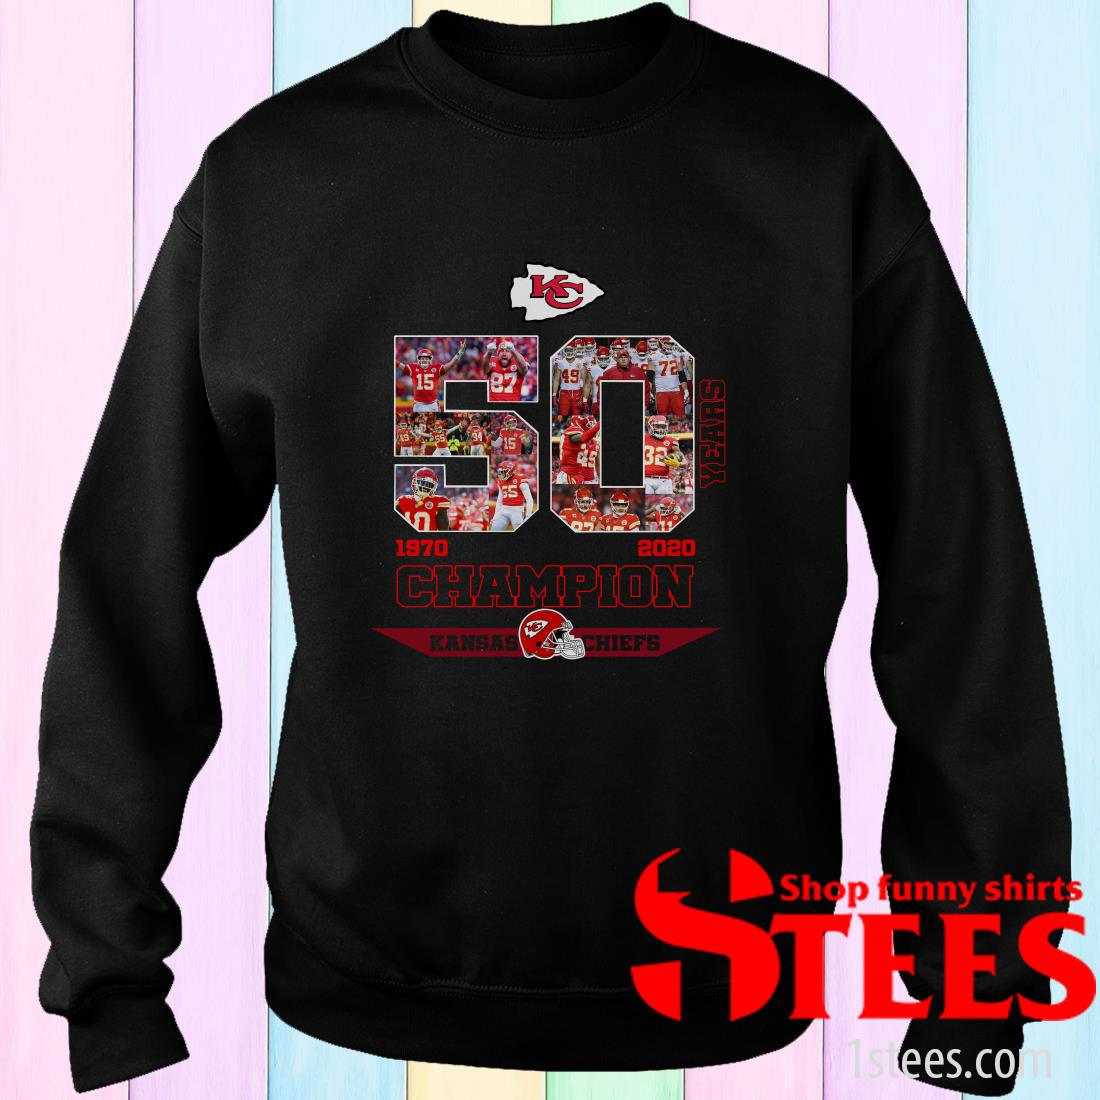 50 Years Of Kansas City Chiefs 1970 2020 Champion Sweatshirt